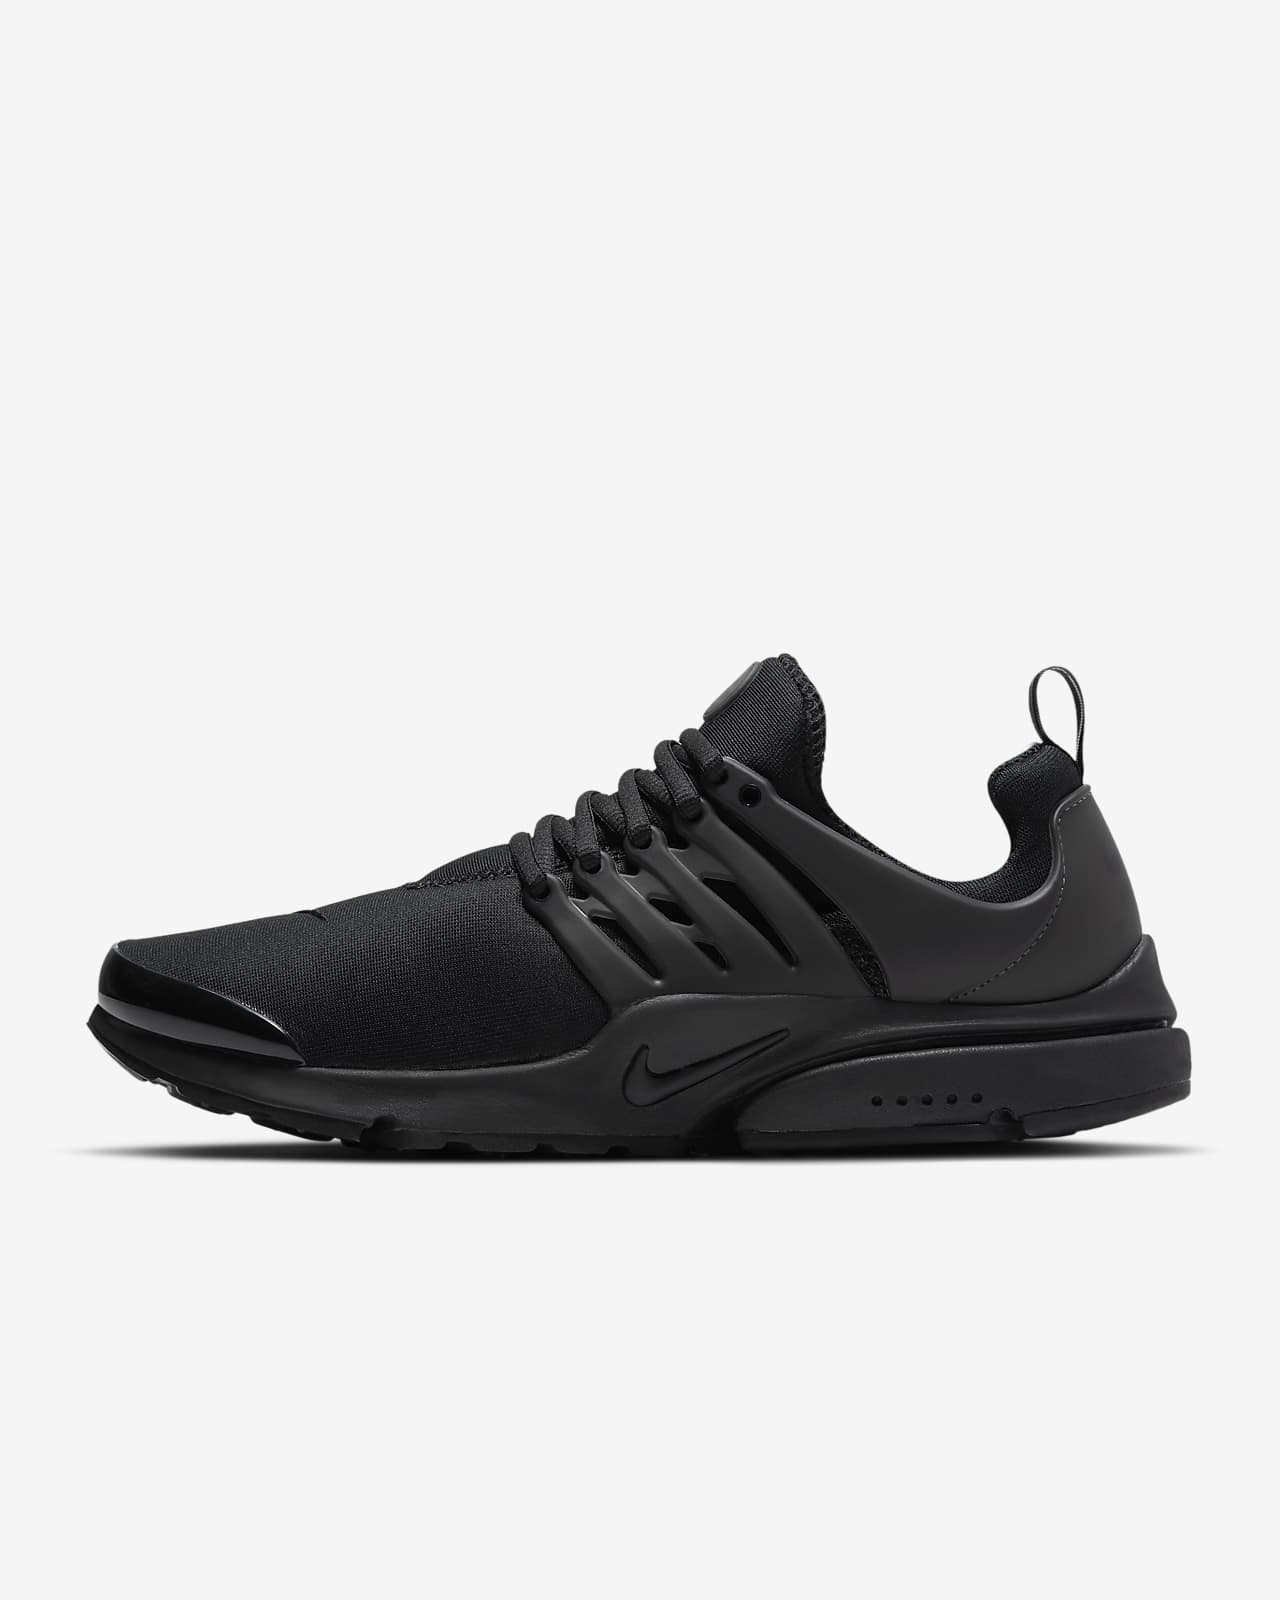 Nike Air Presto Men's Shoe